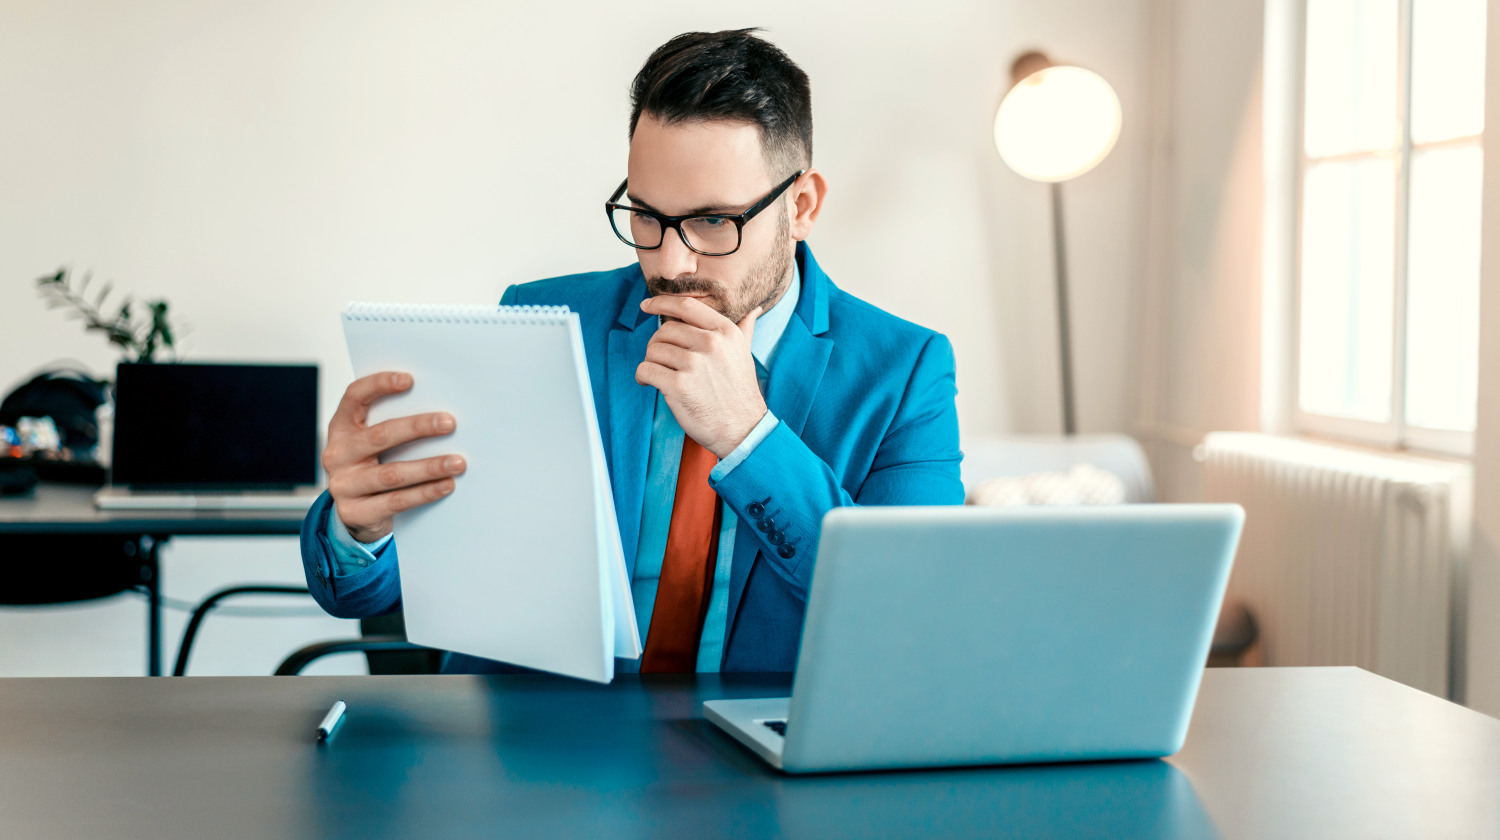 Feature   Concentrated young businessman reading documents at office desk   Natural Brain Vitamins To Improve Your Memory And Focus